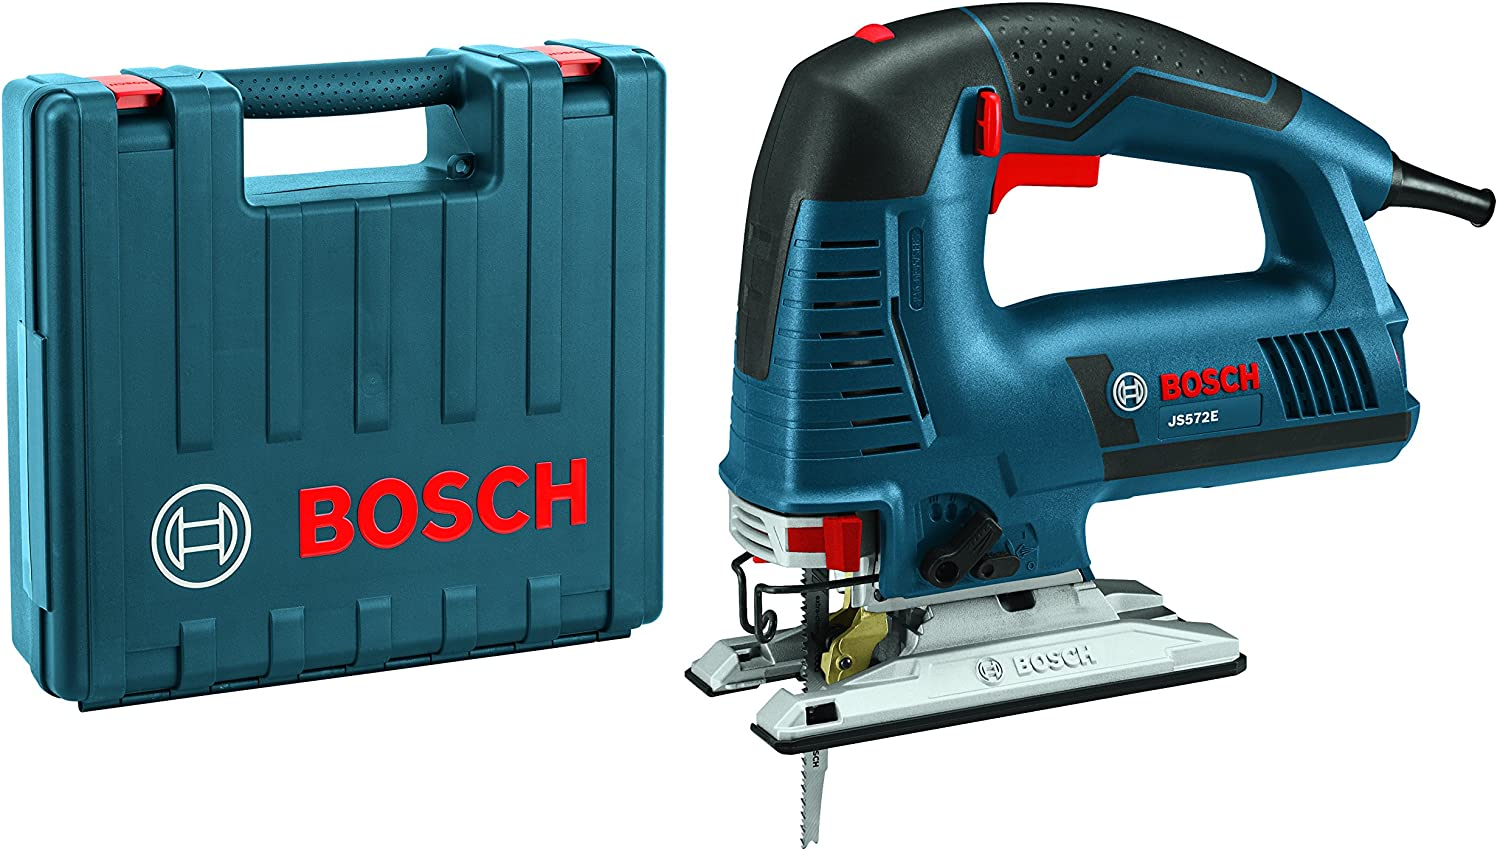 BOSCH Power Tools Jigsaw Kit - JS572EK - 7.2 Amp Corded Variable Speed Top-Handle Jig Saw Kit with Assorted Blades and Carrying Case